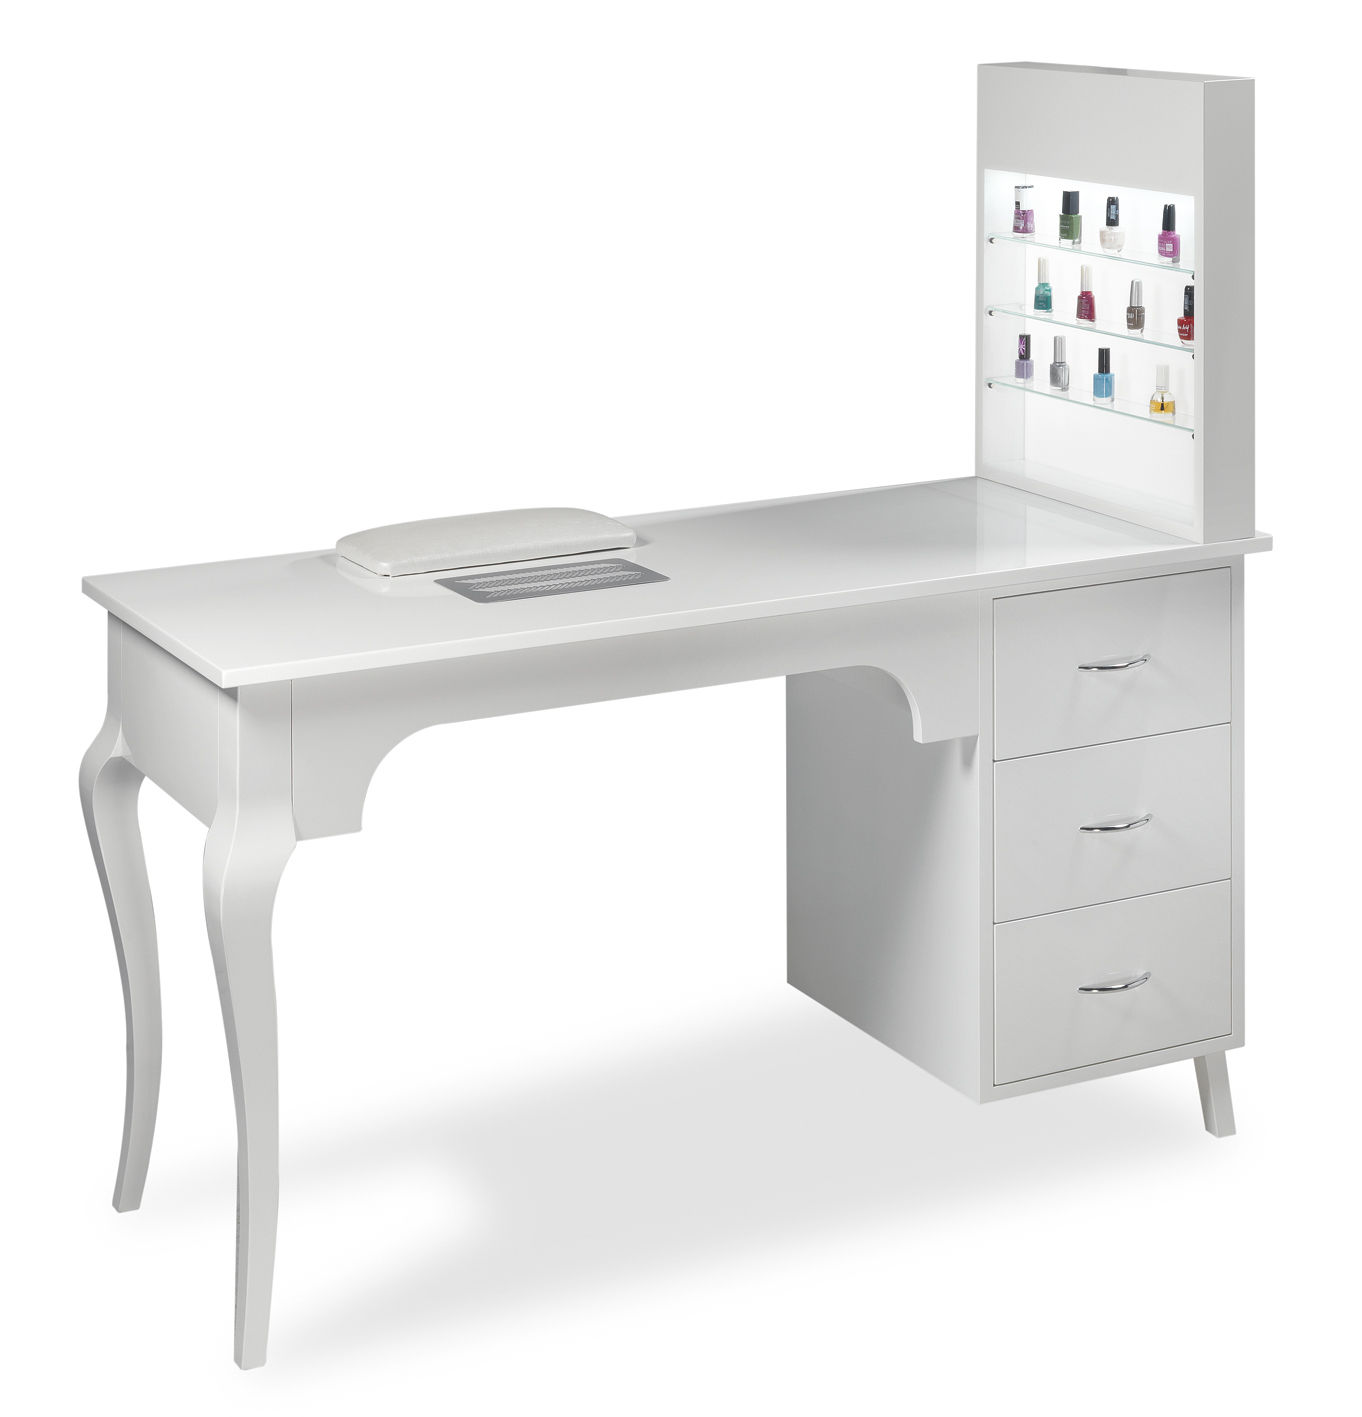 Manicure table with vacuum cleaner - ESTETICA VEZZOSI: MARYLIN NAILS ...